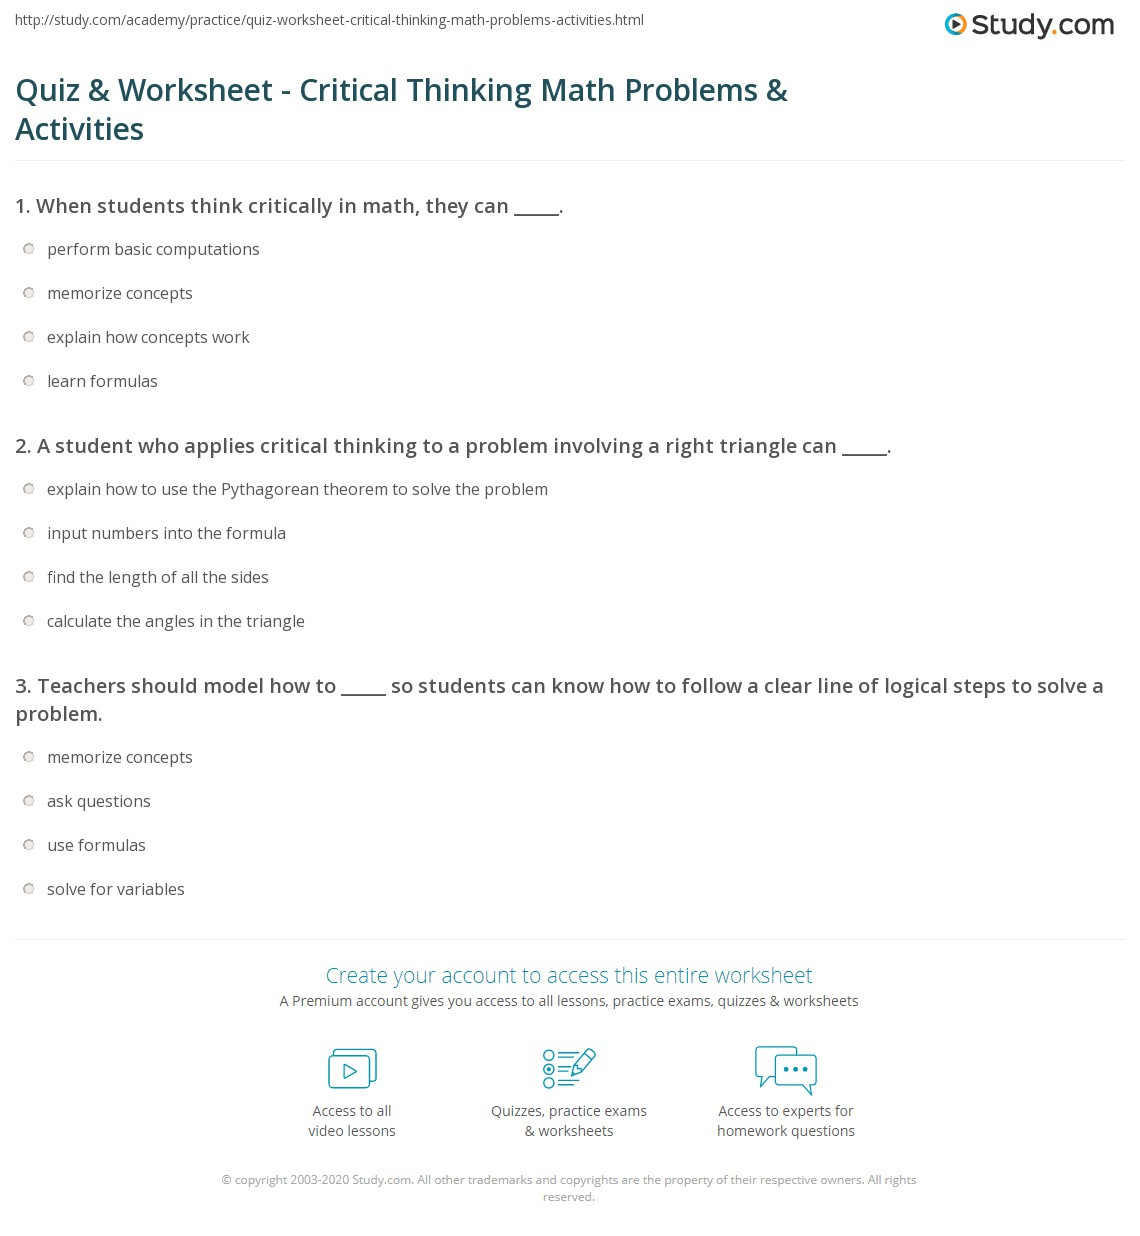 Critical thinking worksheets for kids – Math Worksheets to Do Online